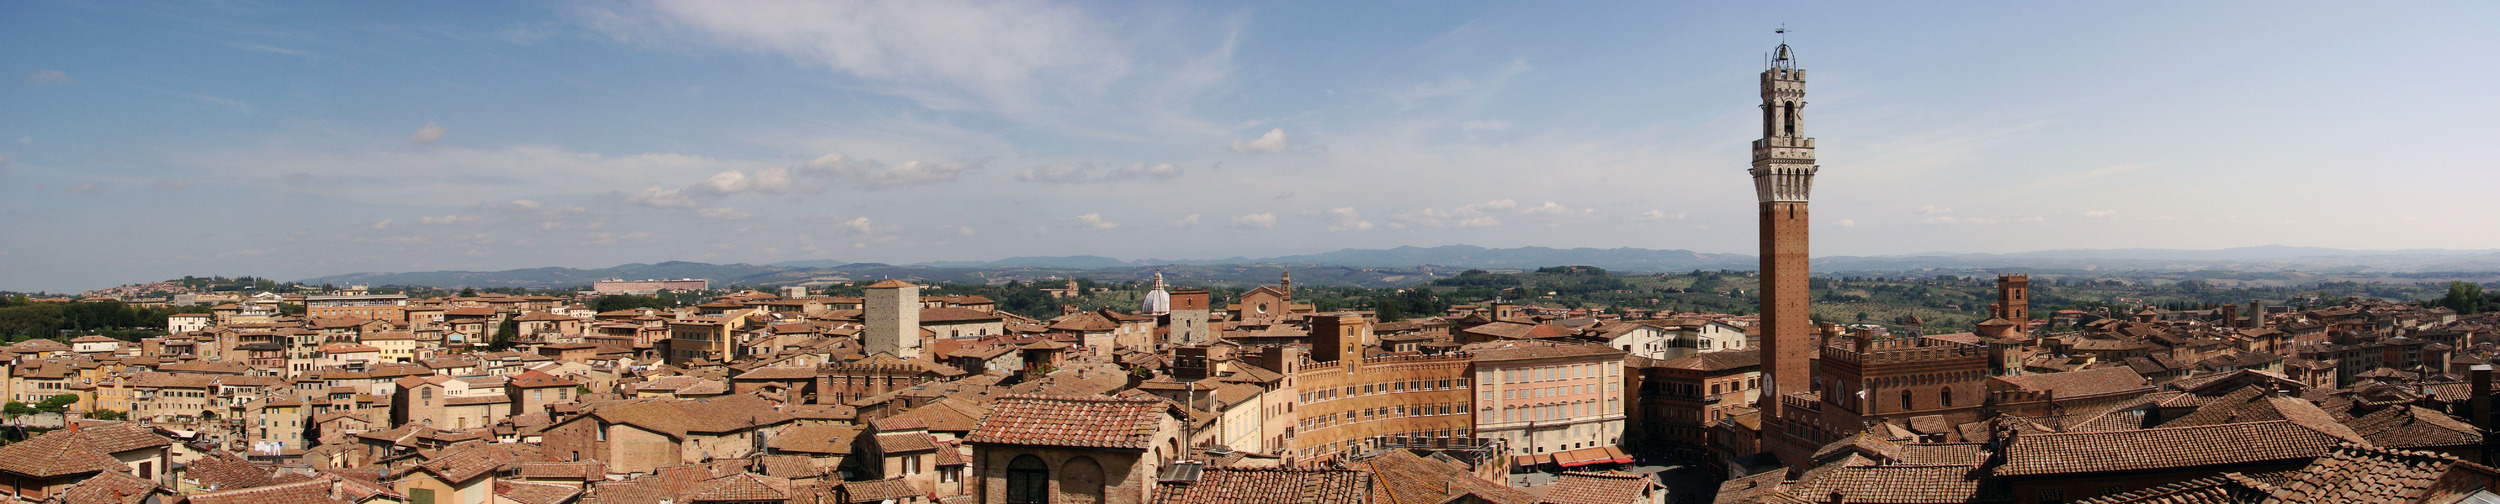 Car Parking Discount for tourist staying overnight in Siena